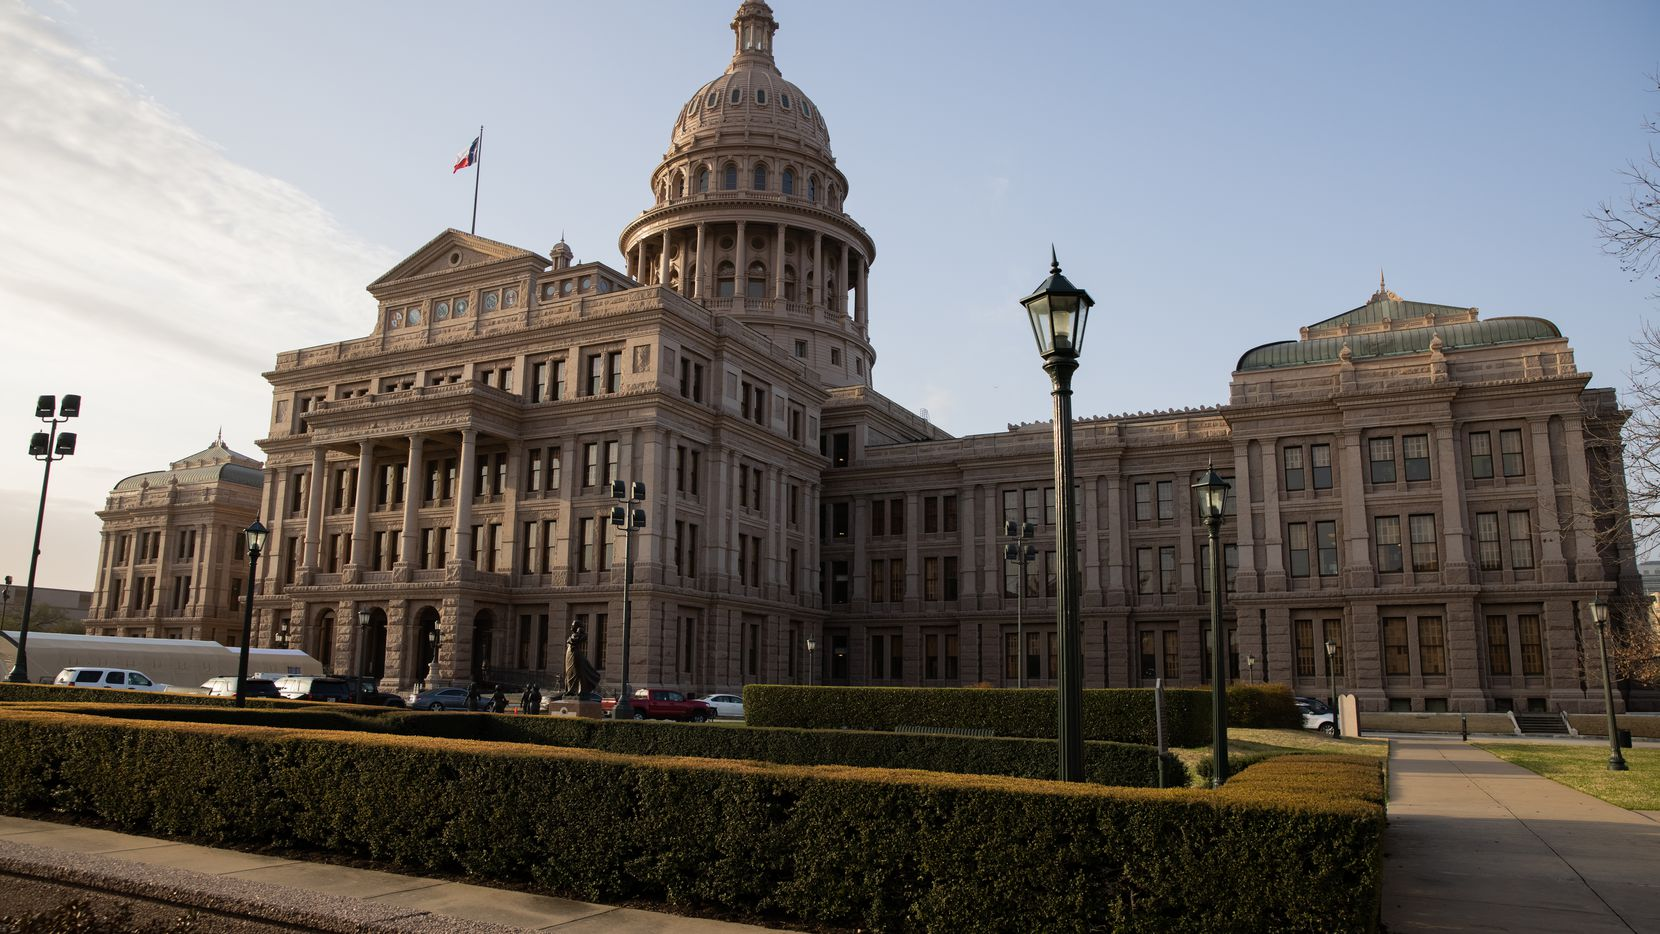 The Texas Senate has dropped, for now, its push to shrink the state's 14 court of appeals districts into seven. Democrats, civil rights advocates and even some Republicans opposed.